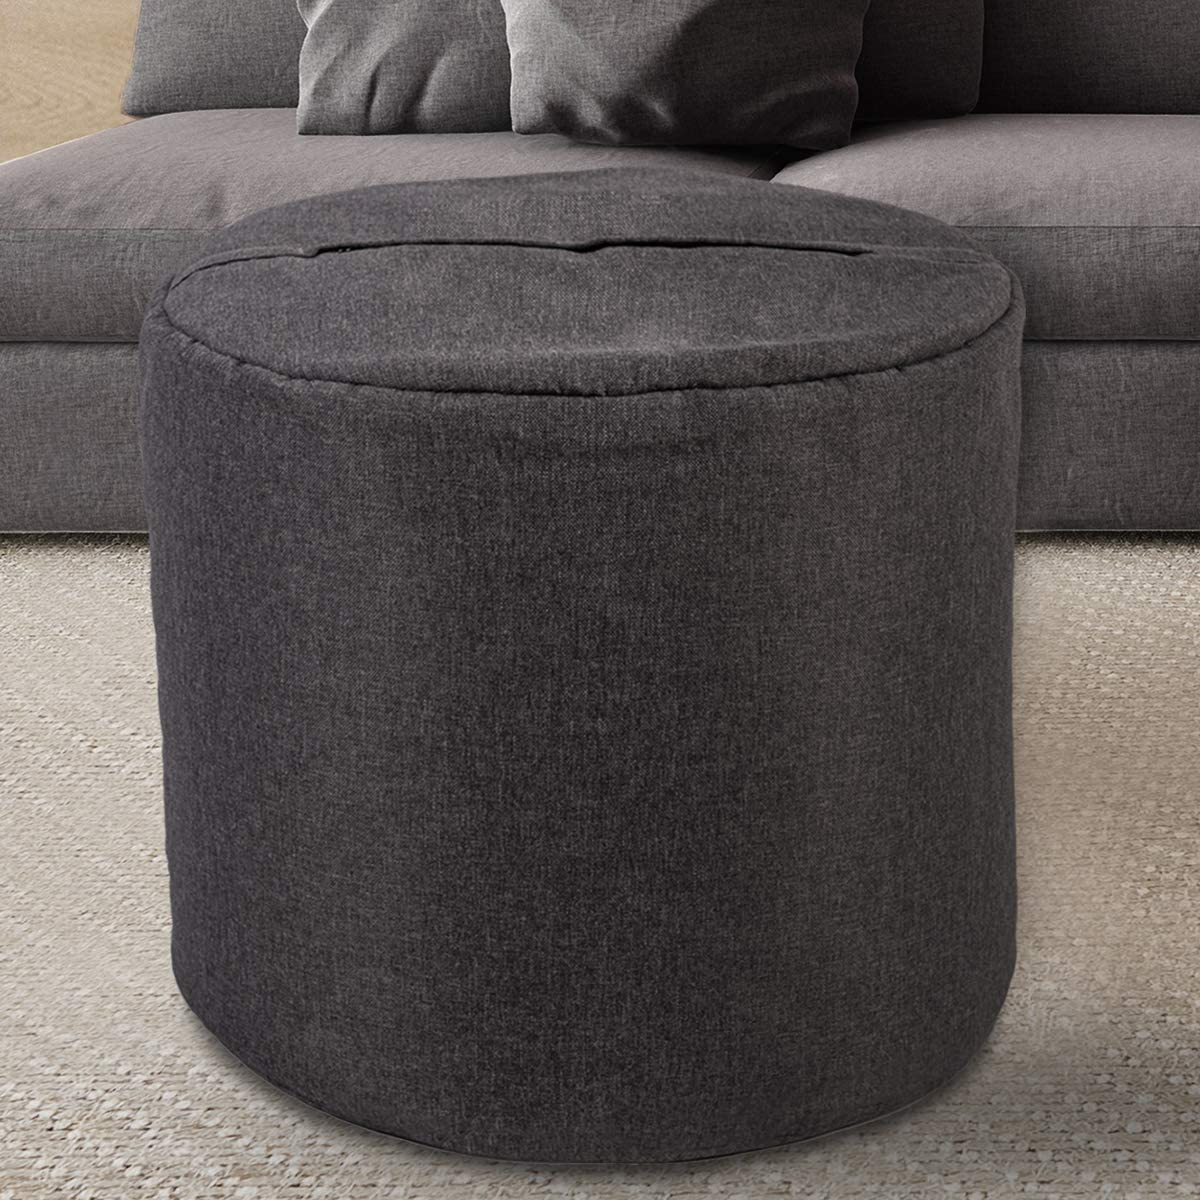 GOOD GRACIOUS Round Pouf Ottoman Bean Bag Floor Footrest Footstool for Living Room or Bedroom, Grey